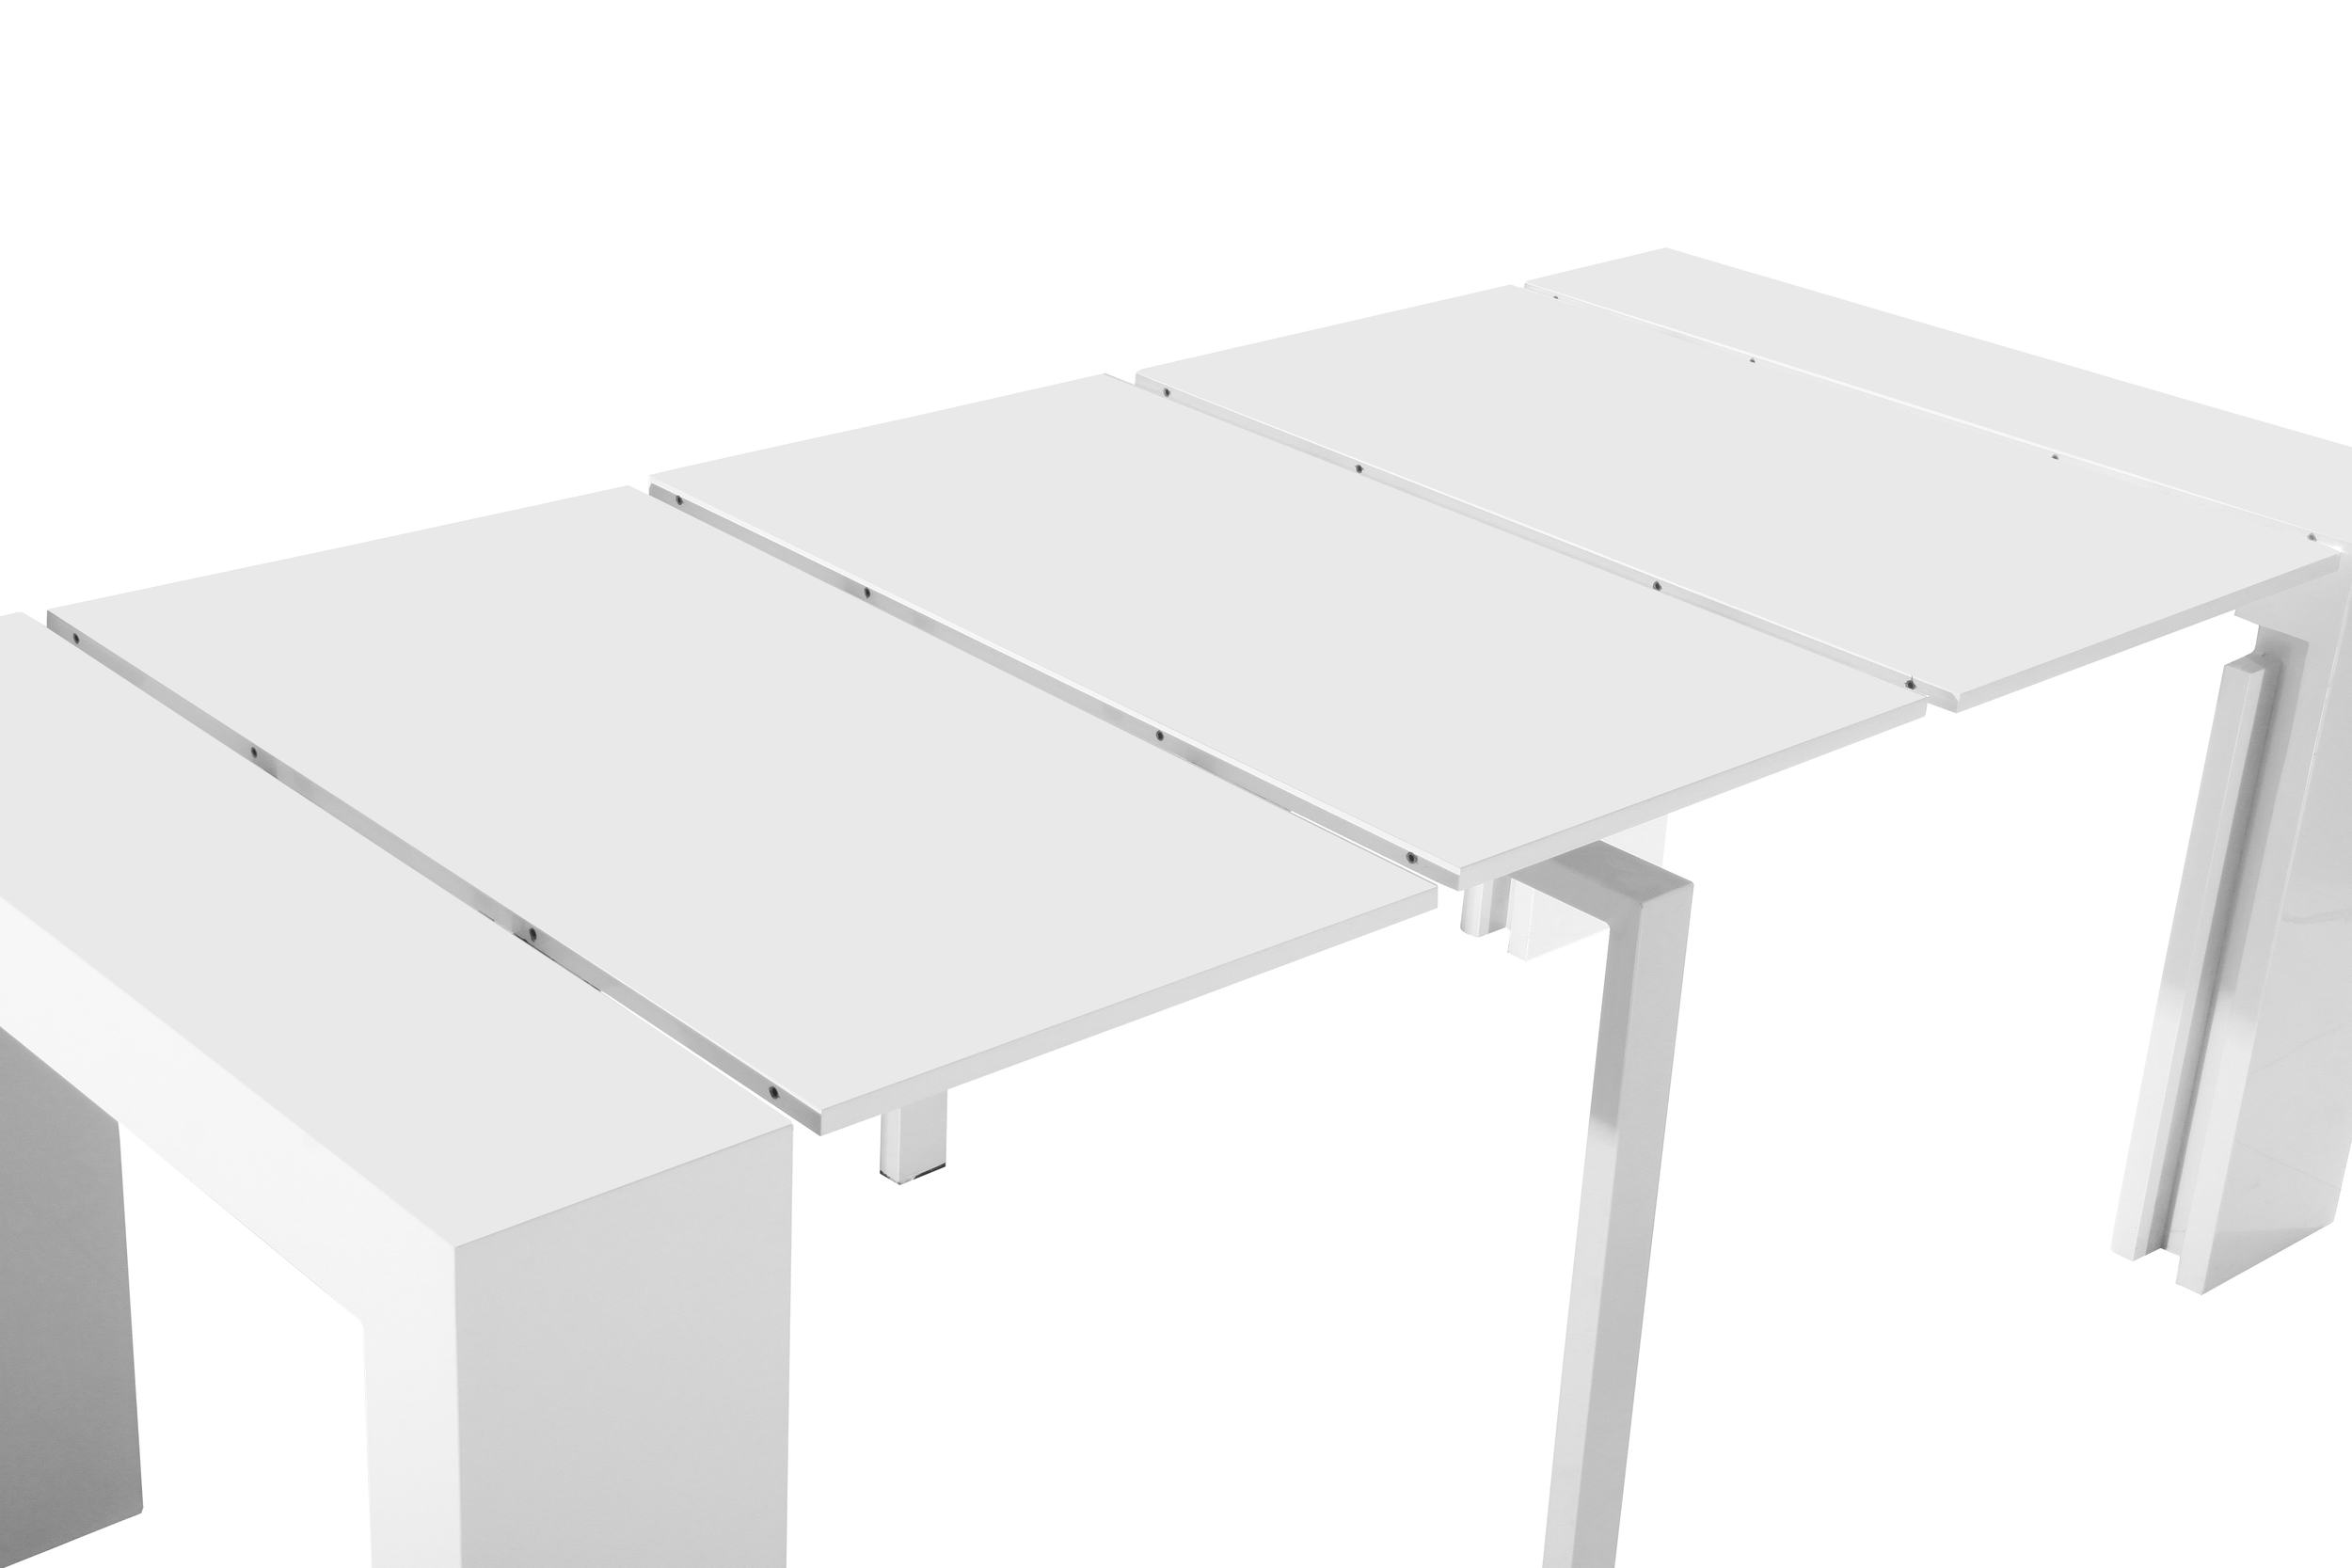 Table Leaves Positioned Over Sliding Rails